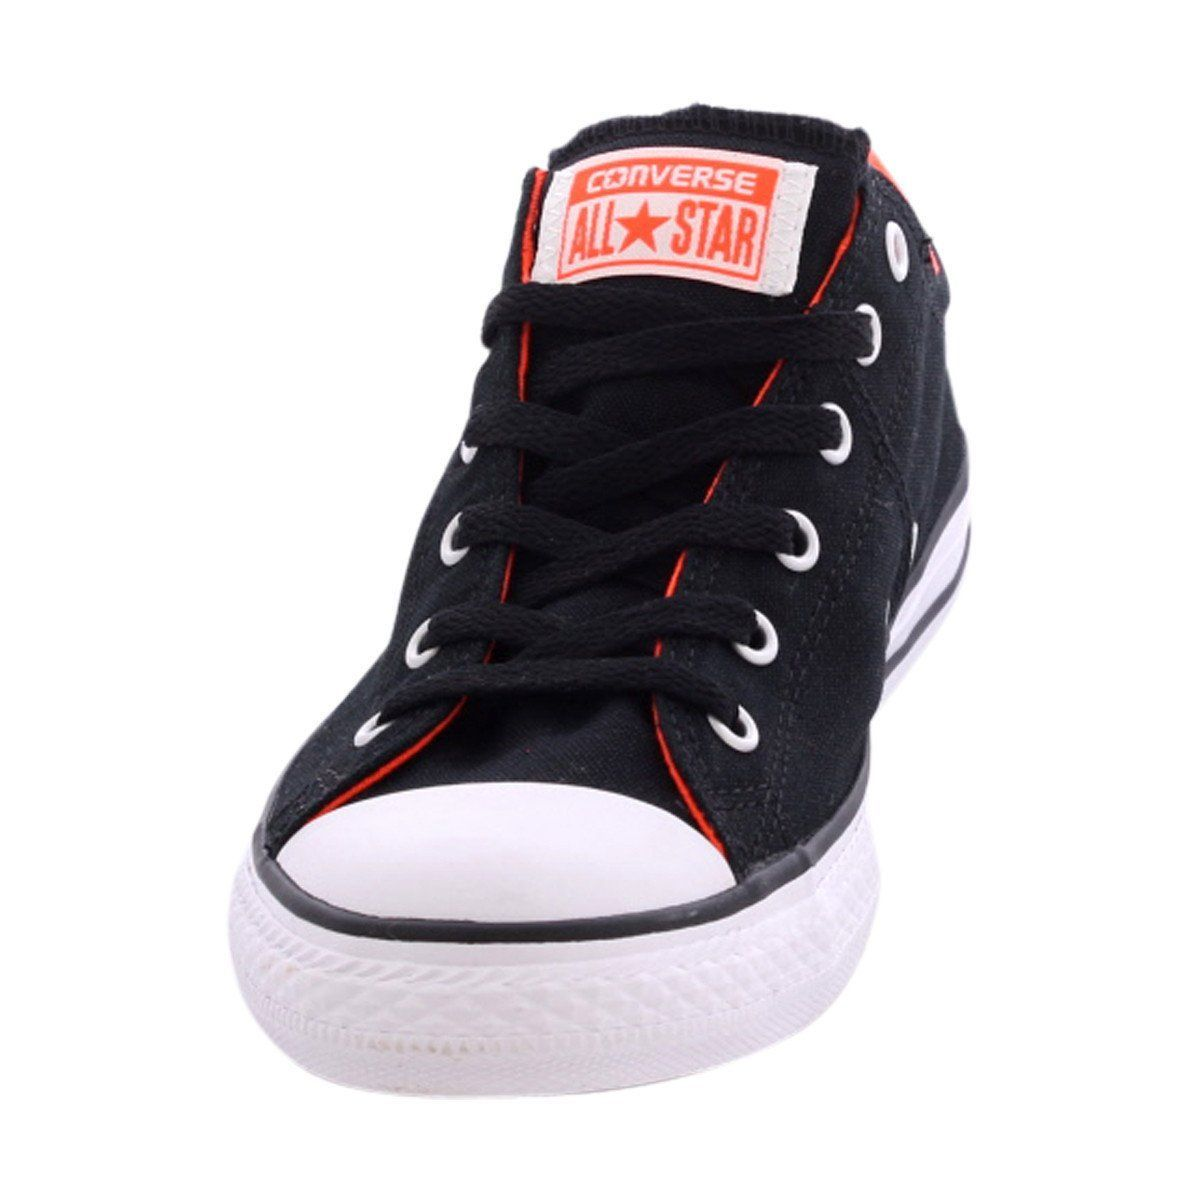 1dcb8f76867a70 Converse - Boy s As Ct All Star Madison Sneakers (Big Kid) - Black Lava  White